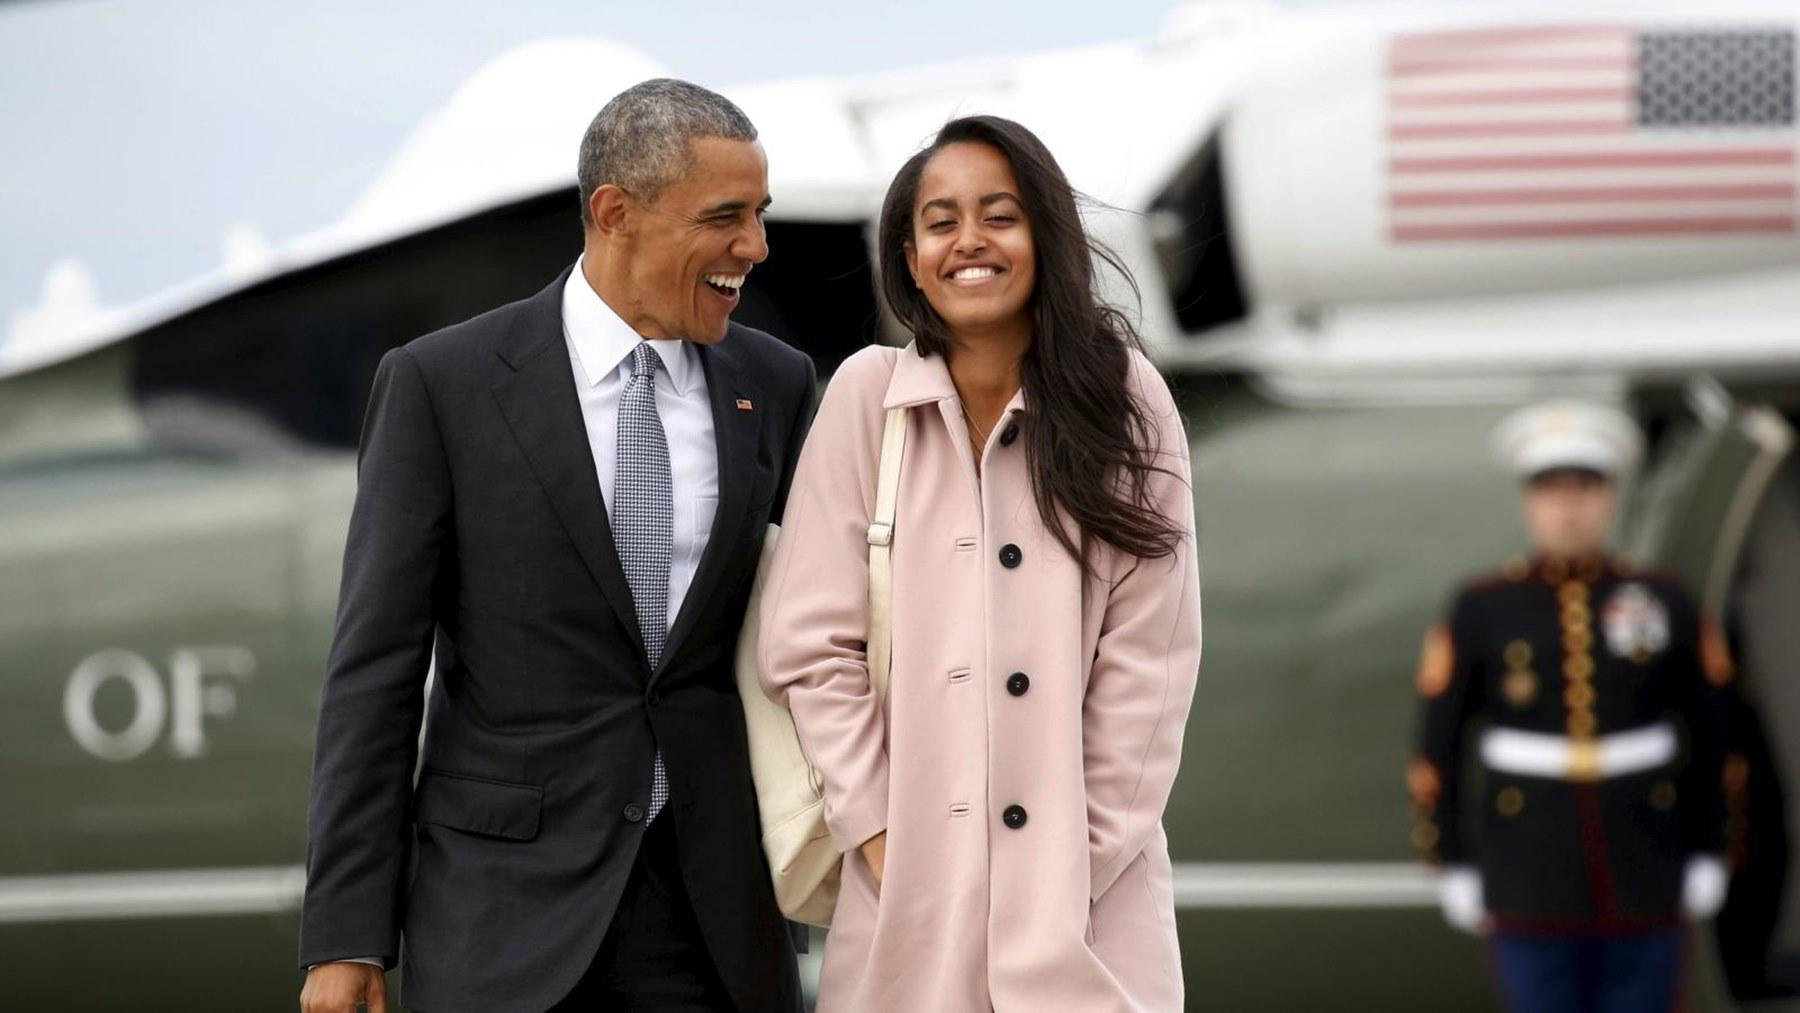 Barack Obama's Eldest Daughter, Malia Obama, Explores London With Her Boyfriend, Rory Farquharson, In Sweet Photos Amidst Reports That The Romance Is Getting More Serious